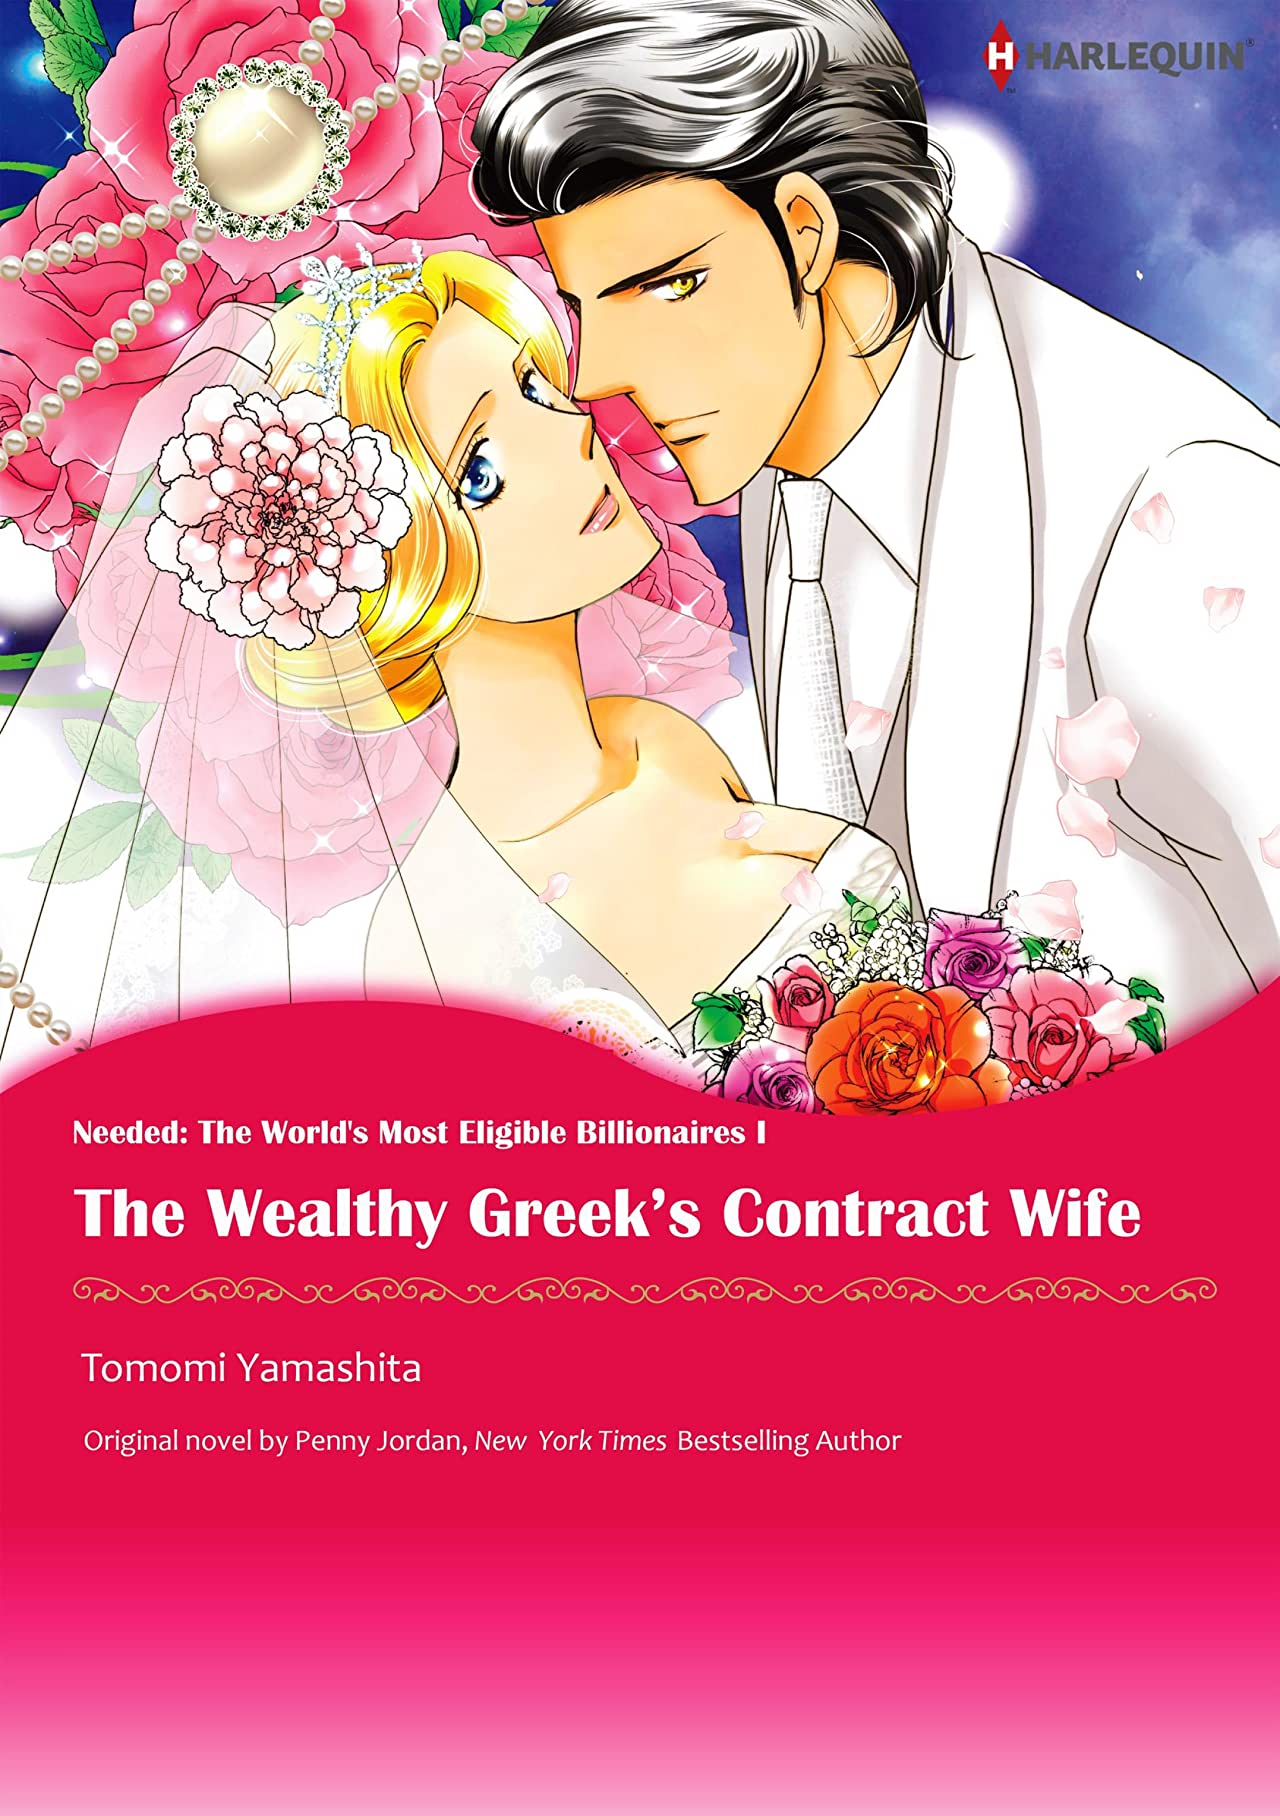 The Wealthy Greek's Contract Wife Vol. 1: Needed: The World's Most Eligible Billionaires I